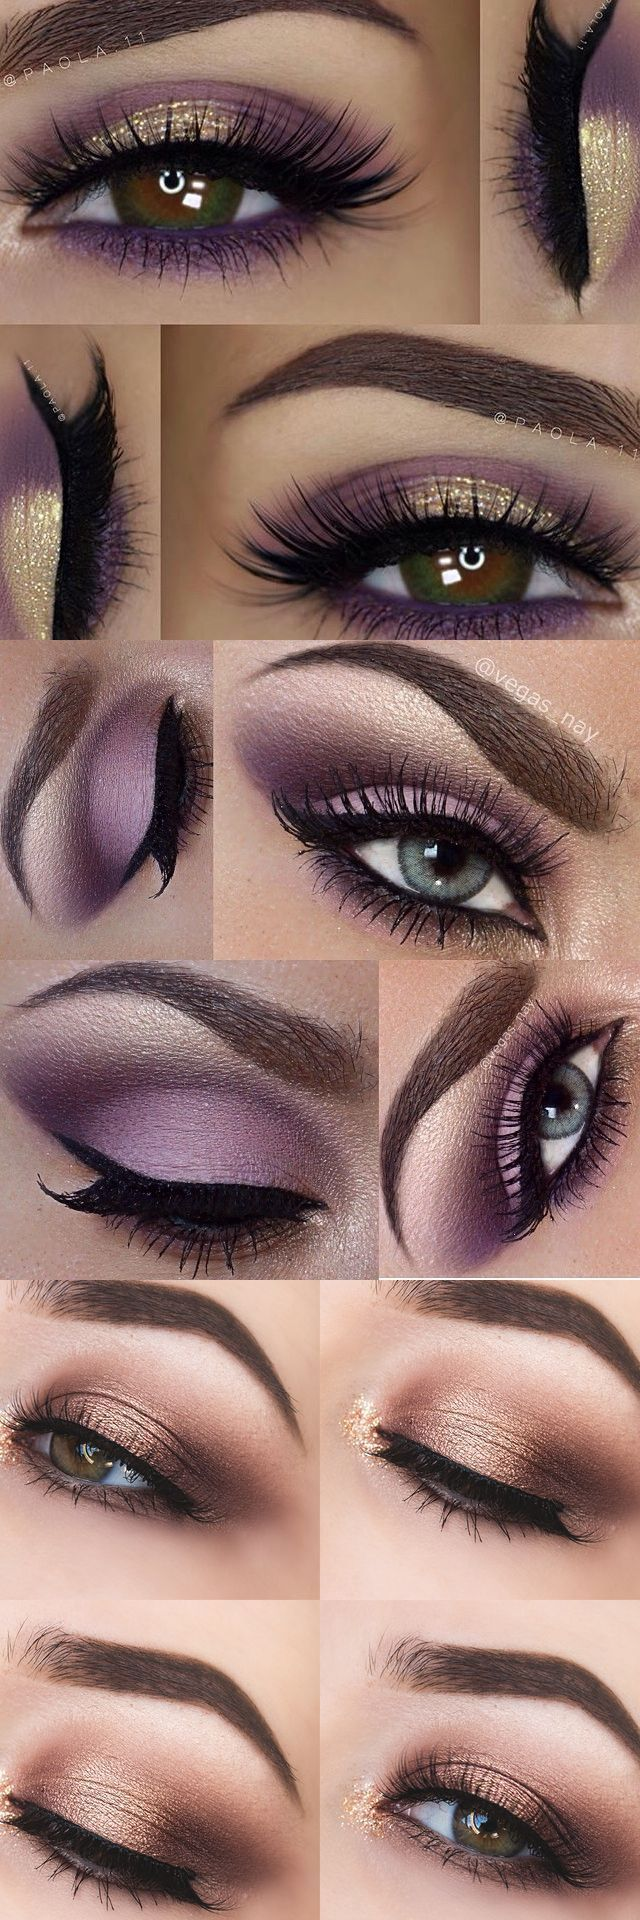 Pretty Purples https://www.youtube.com/channel/UC76YOQIJa6Gej0_FuhRQxJg Life is too short to settle for the same sleep-inducing nude makeup look over and over again. You have earned the right to go bold and bright. Deck of Scarlet partners with the best Youtube artists to create a stunning limited edition palette every two months. Then deliver hot-of-the-press tutorials so you could master the art of getting your sexy on.